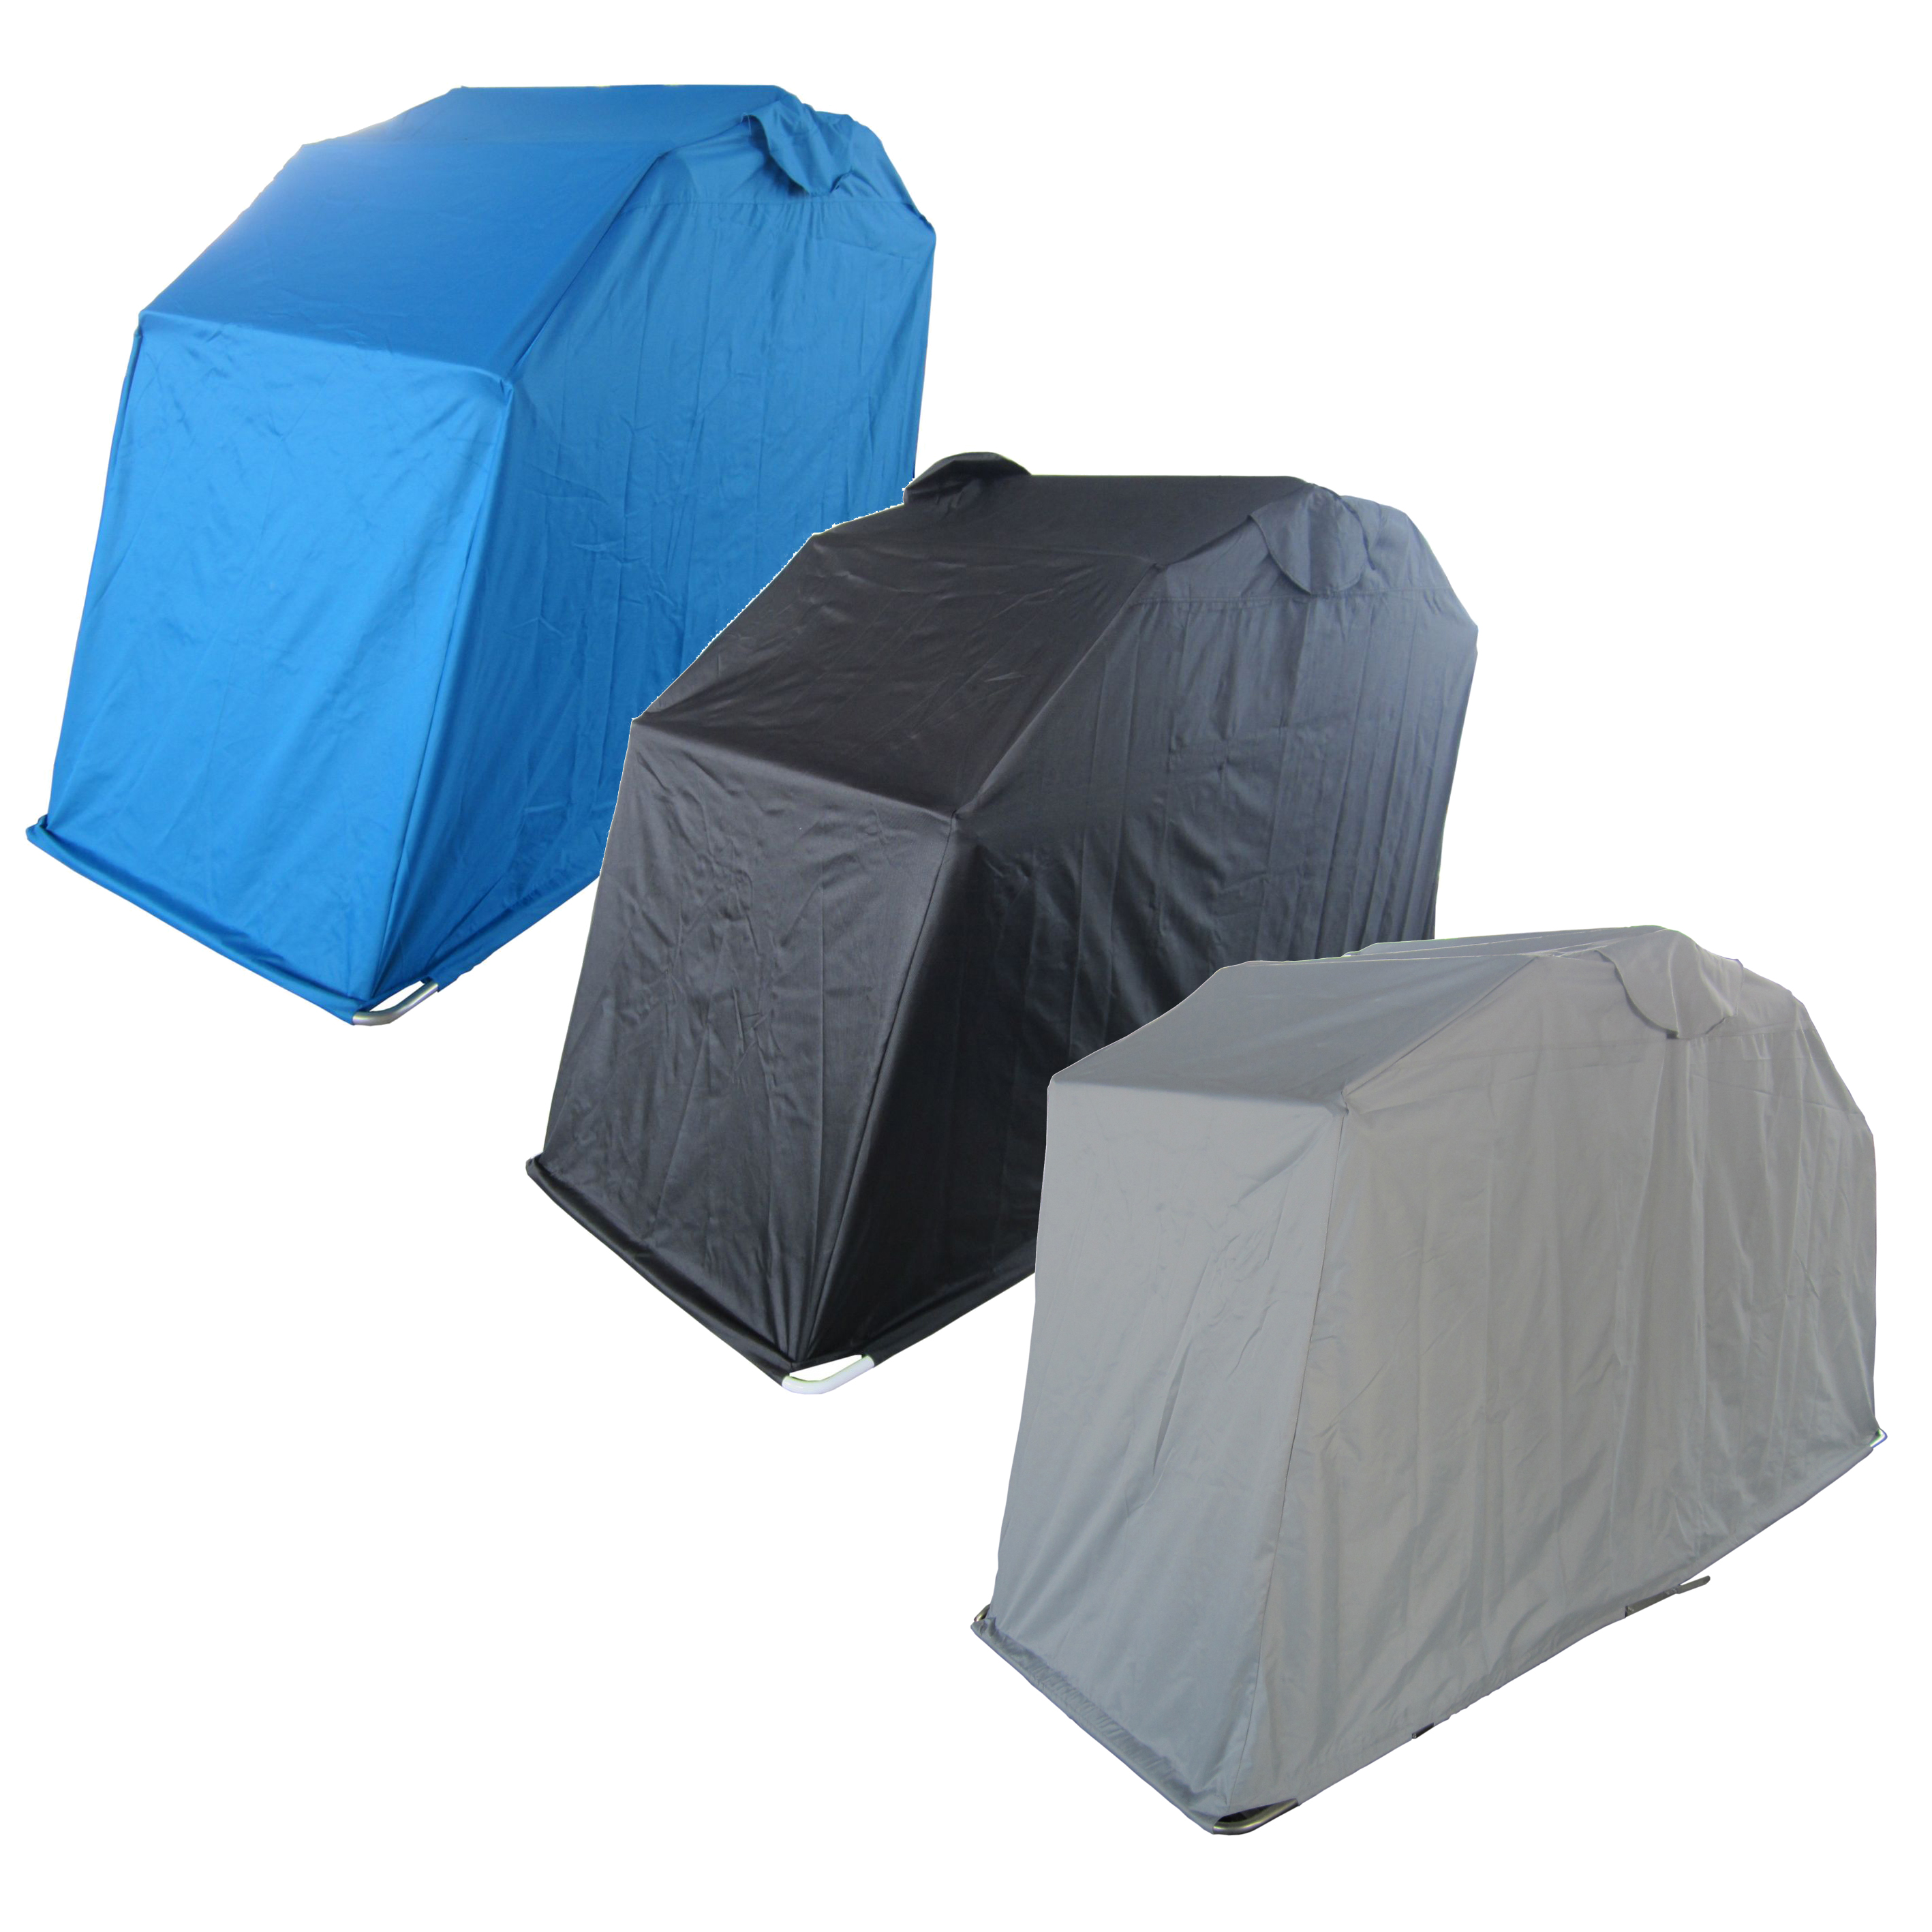 Waterproof motor bike folding cover storage shed shelter - Motorcycle foldable garage tent cover ...